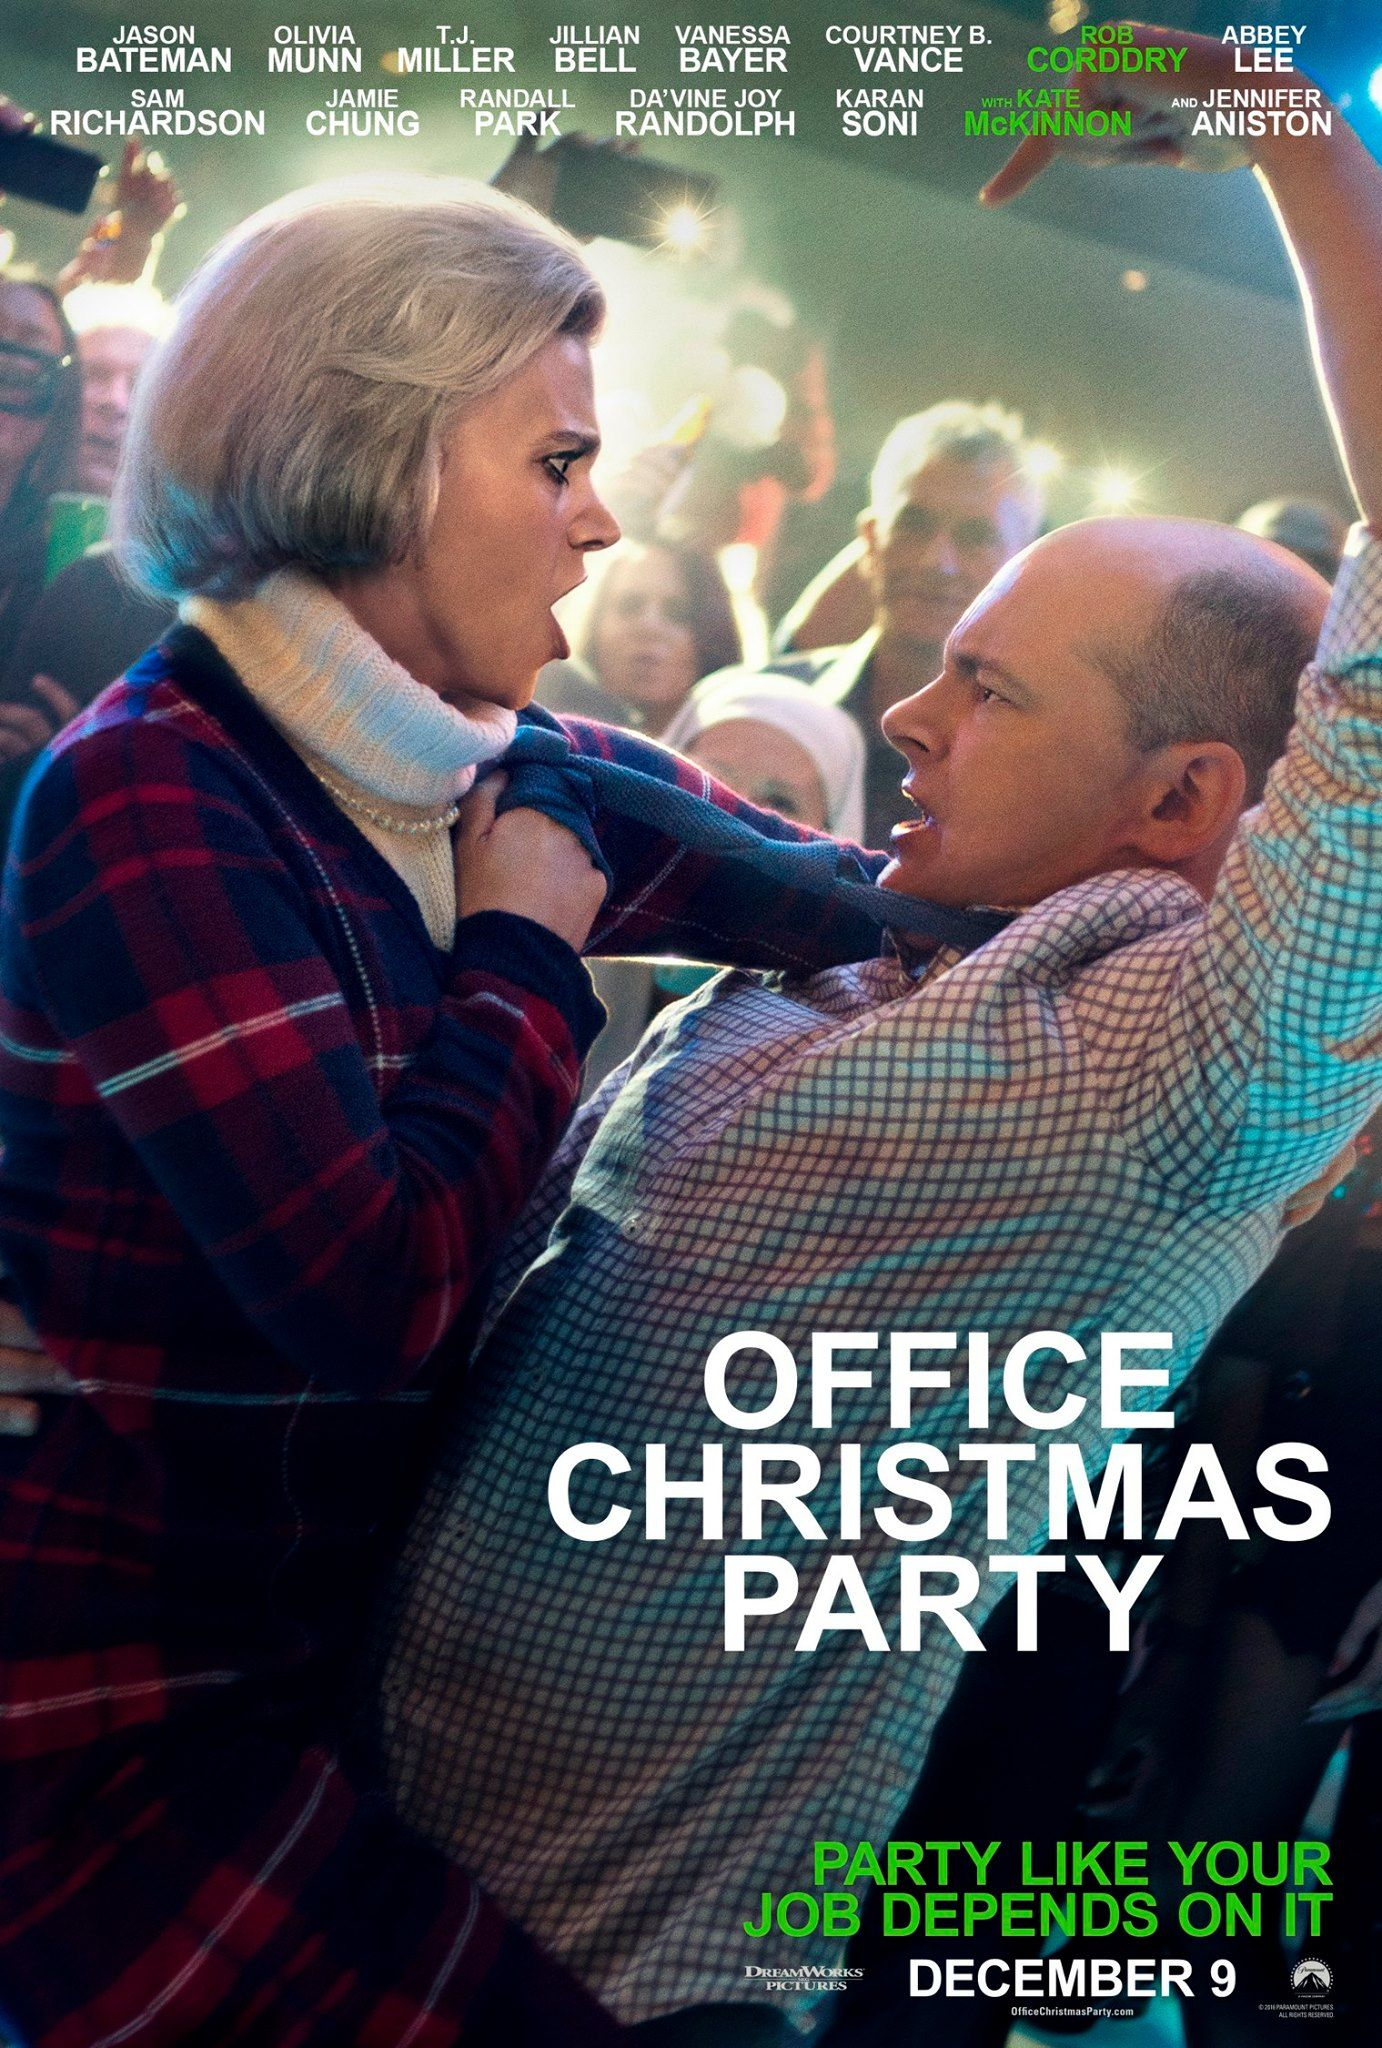 Deck the dance floor with boughs of holly. OFFICE CHRISTMAS PARTY is ...